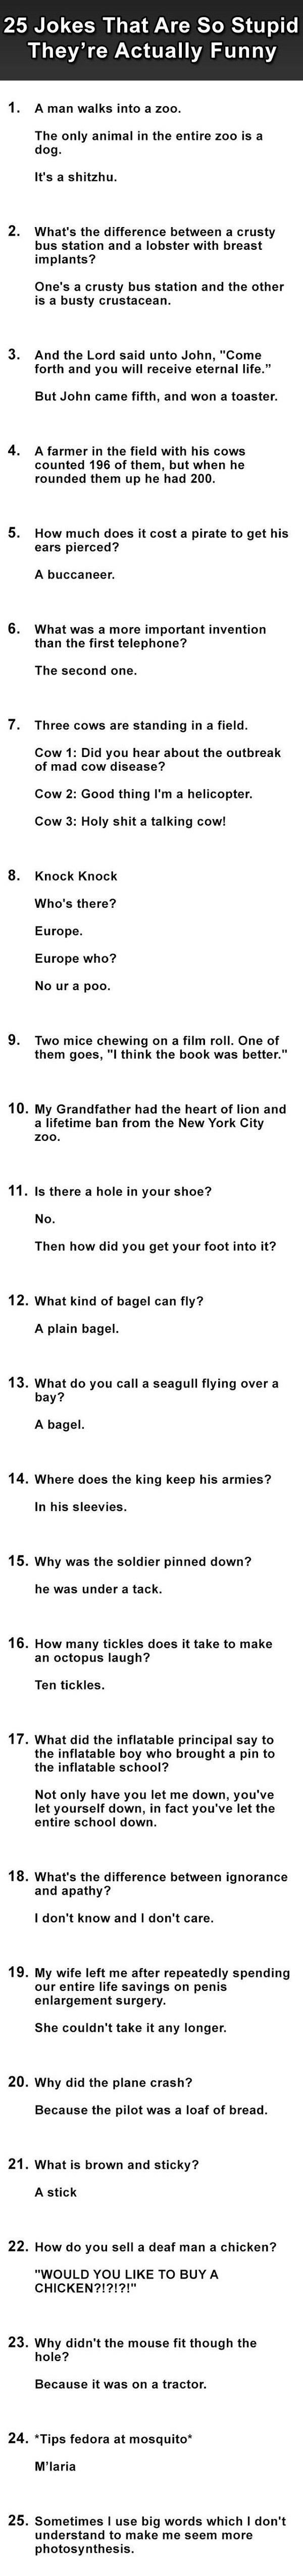 25 Jokes That Are So Stupid They're Actually Funny